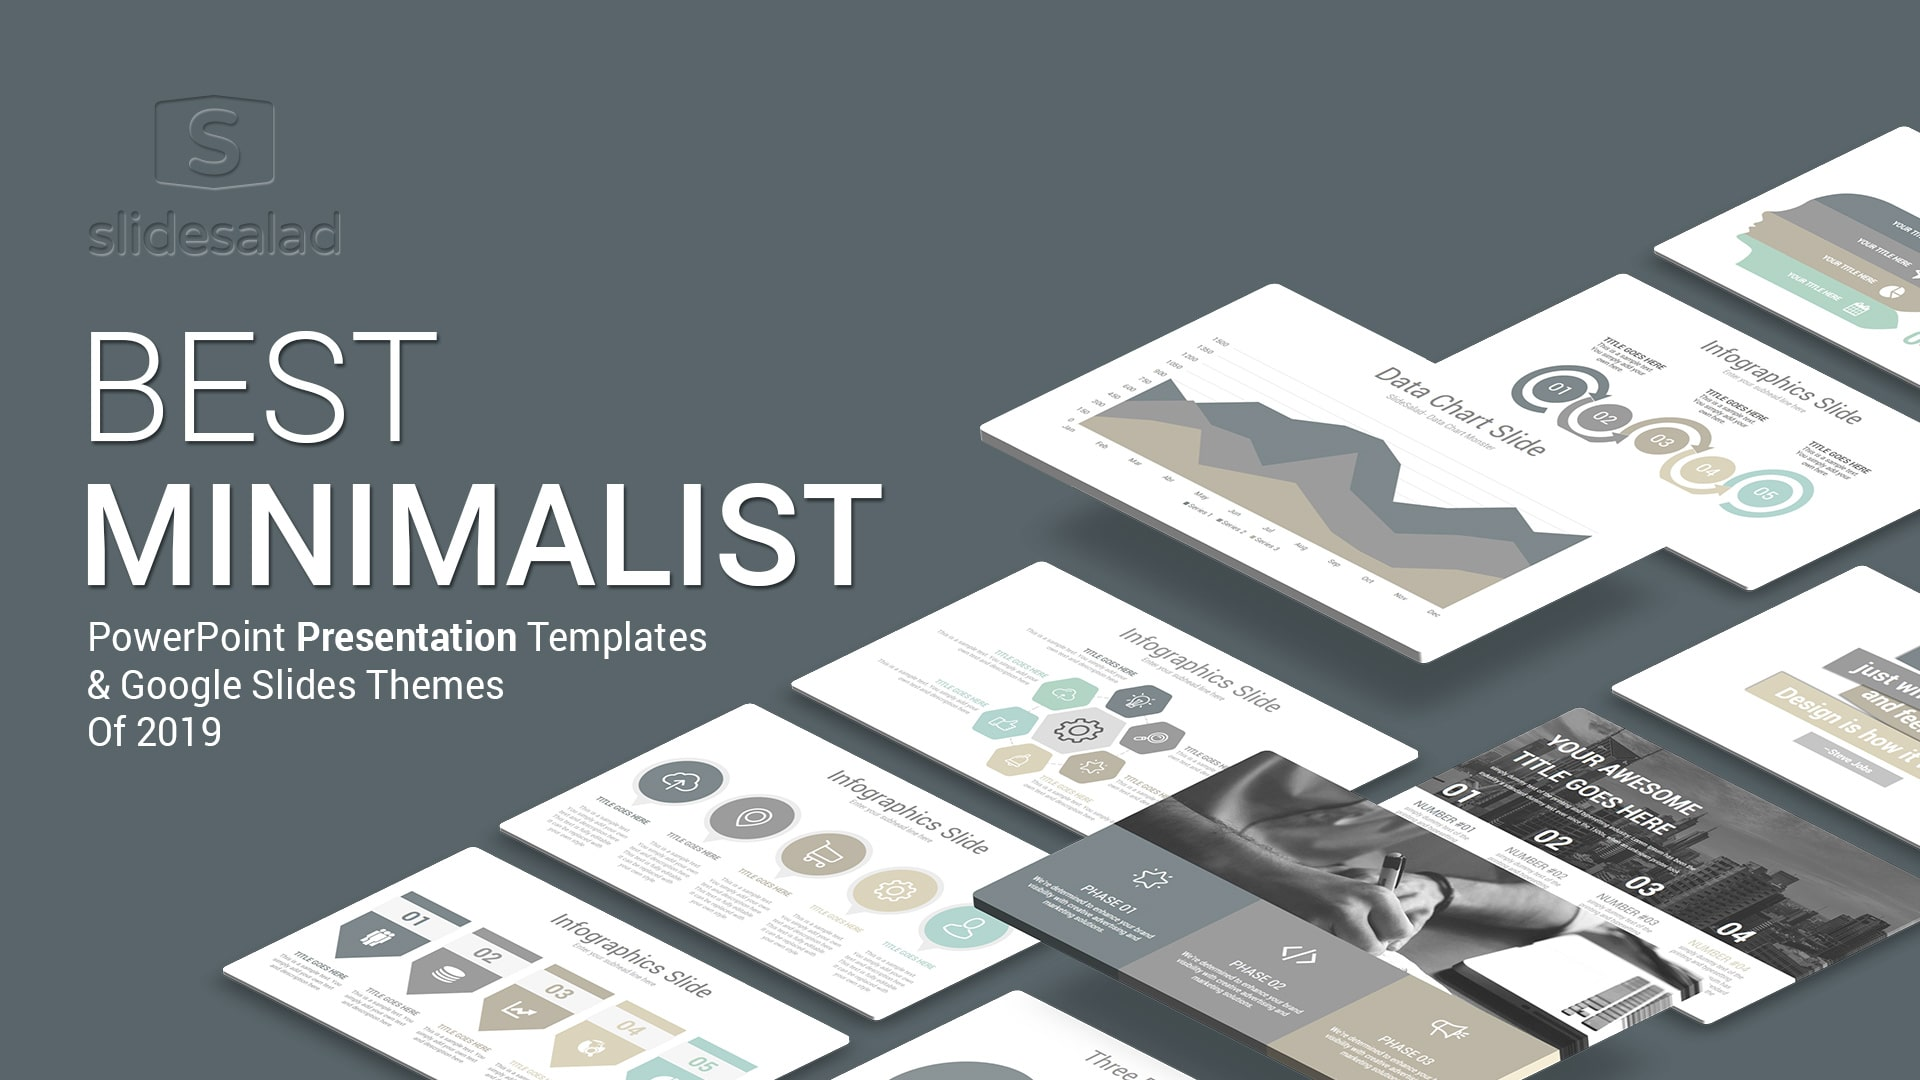 Best Minimalist Powerpoint Templates Of 2019 Slidesalad